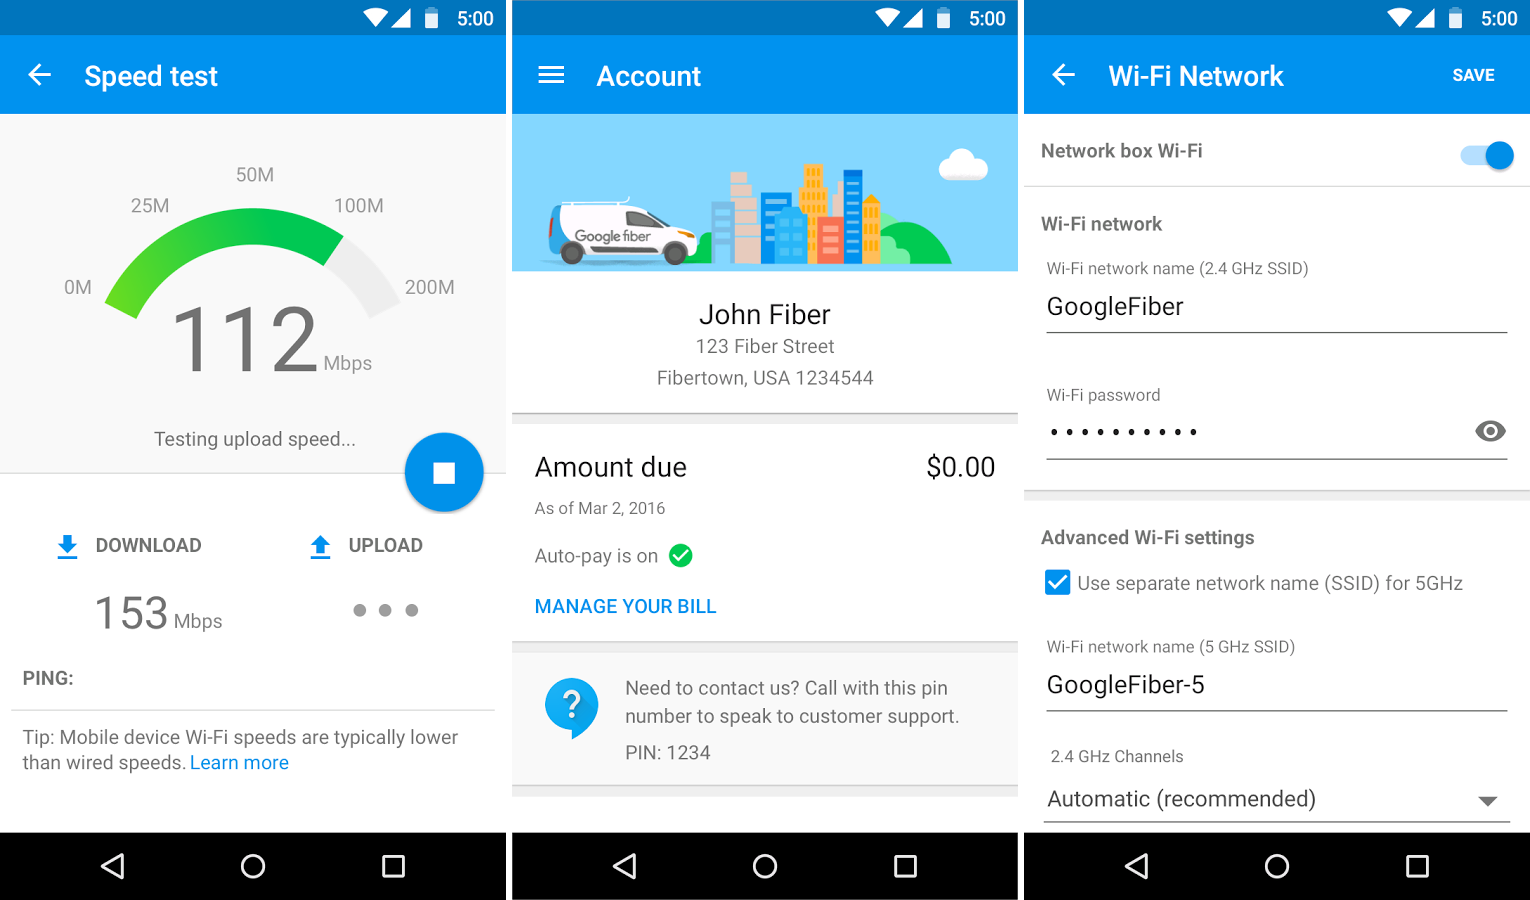 Google releases an app for managing your Google Fiber account